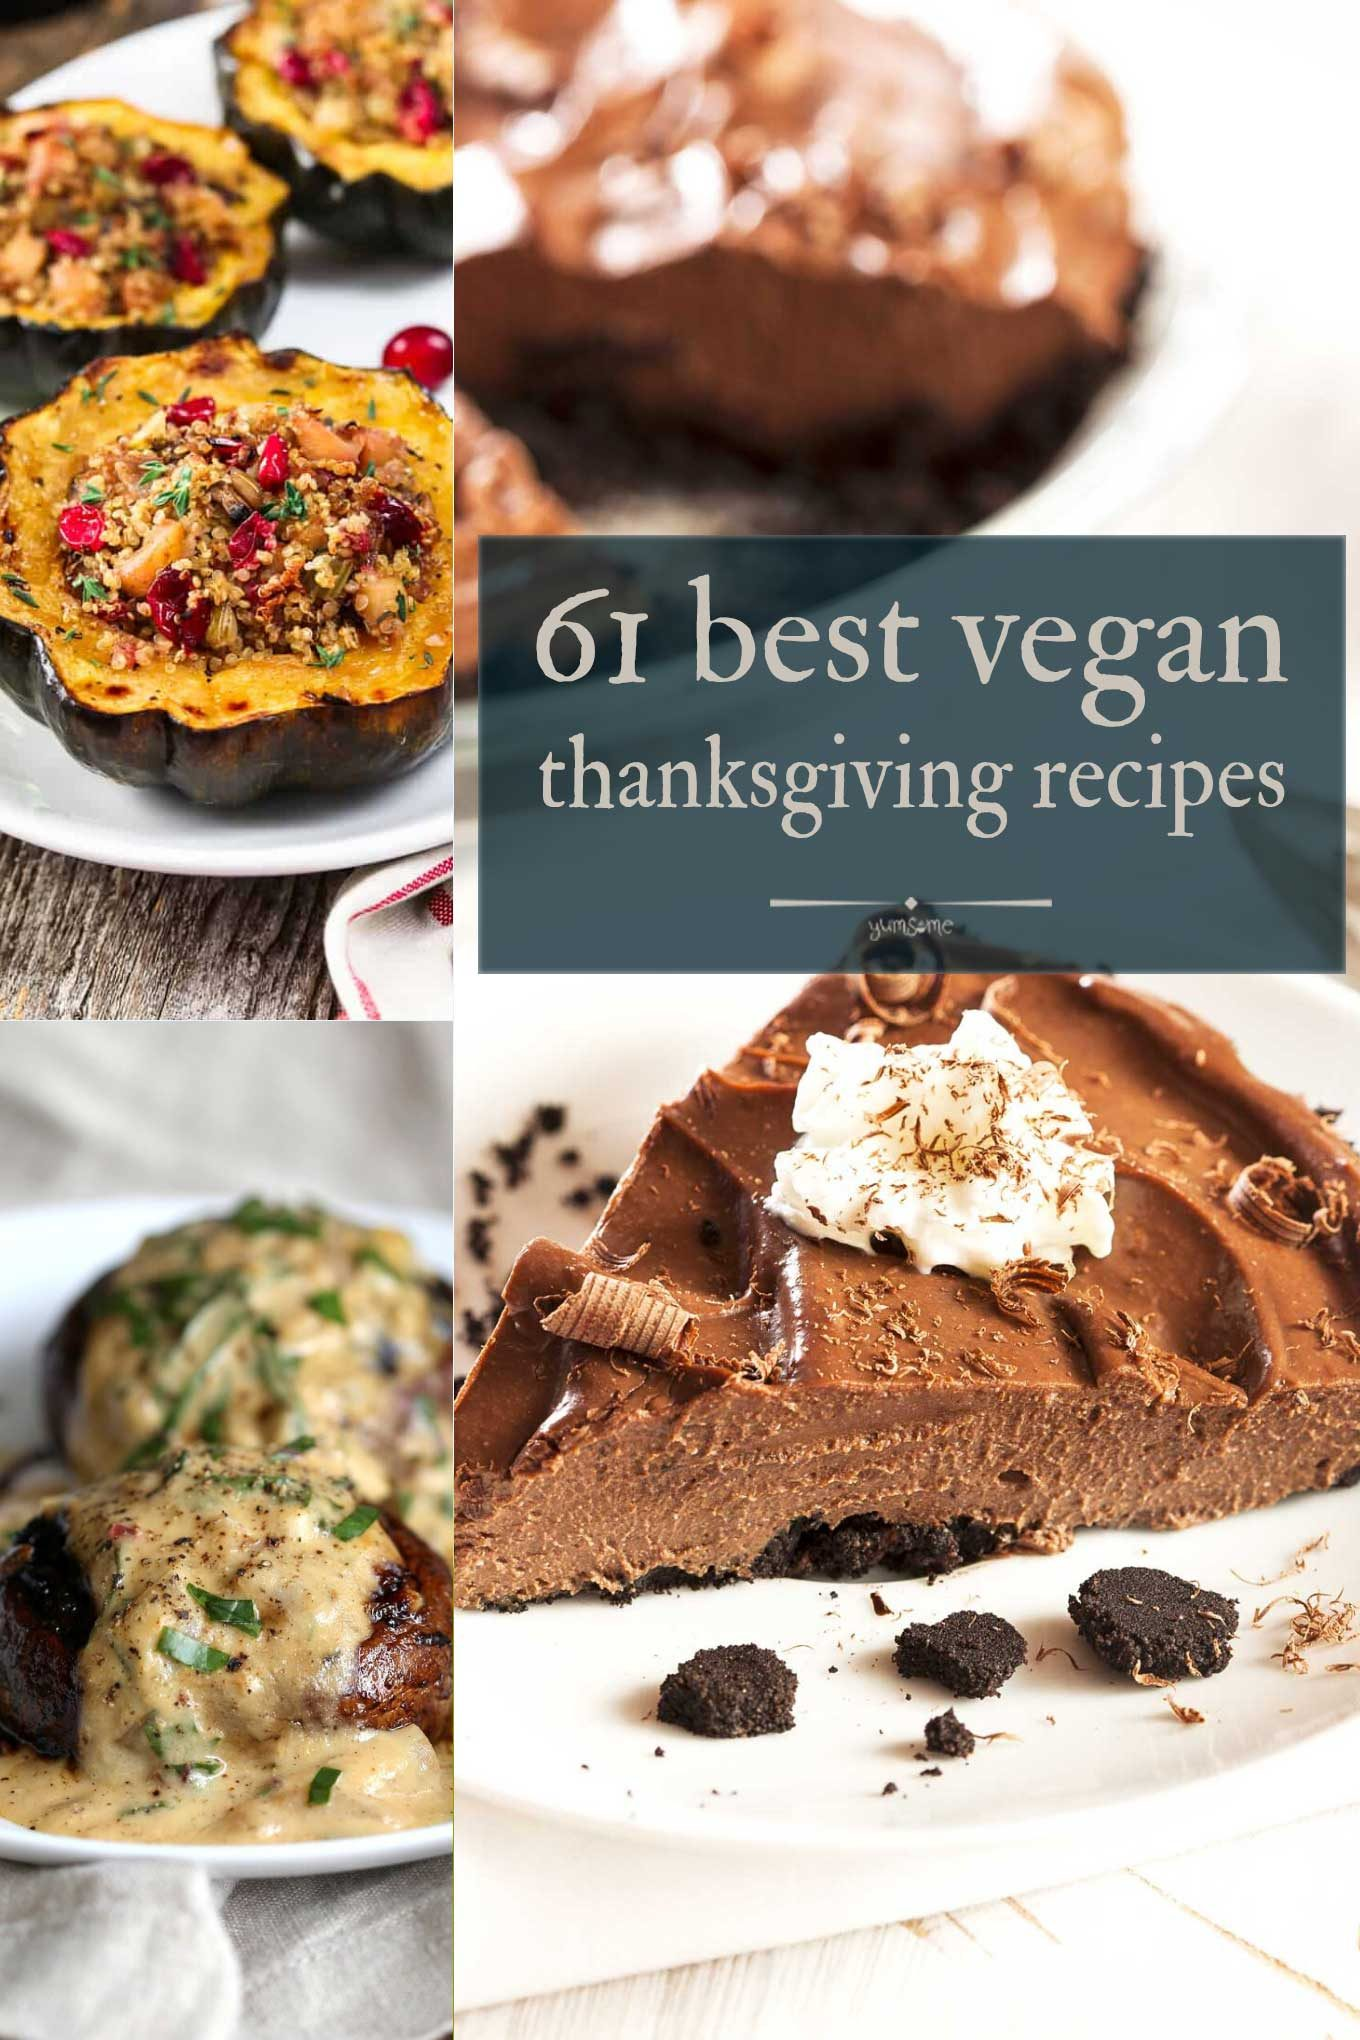 61 best vegan thanksgiving recipes collage.